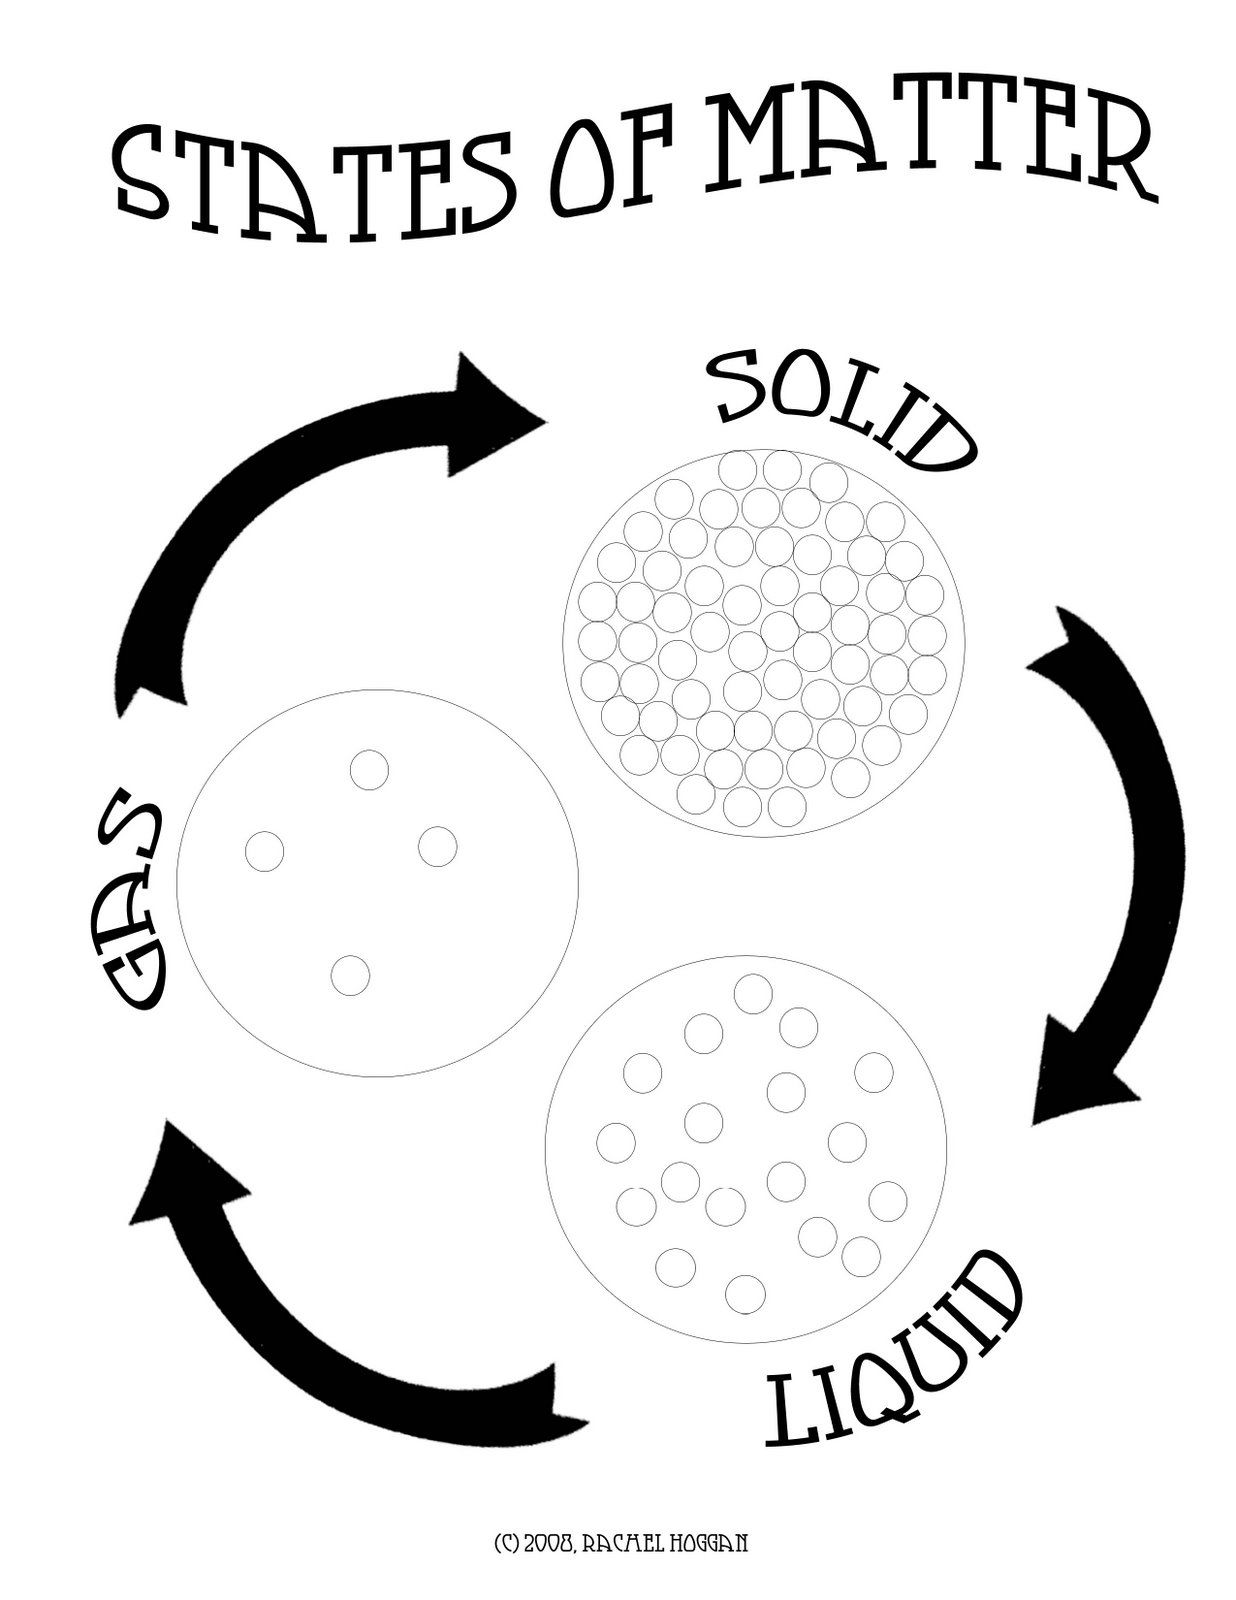 Mommy Lessons 101: Awesome handout on States of Matter